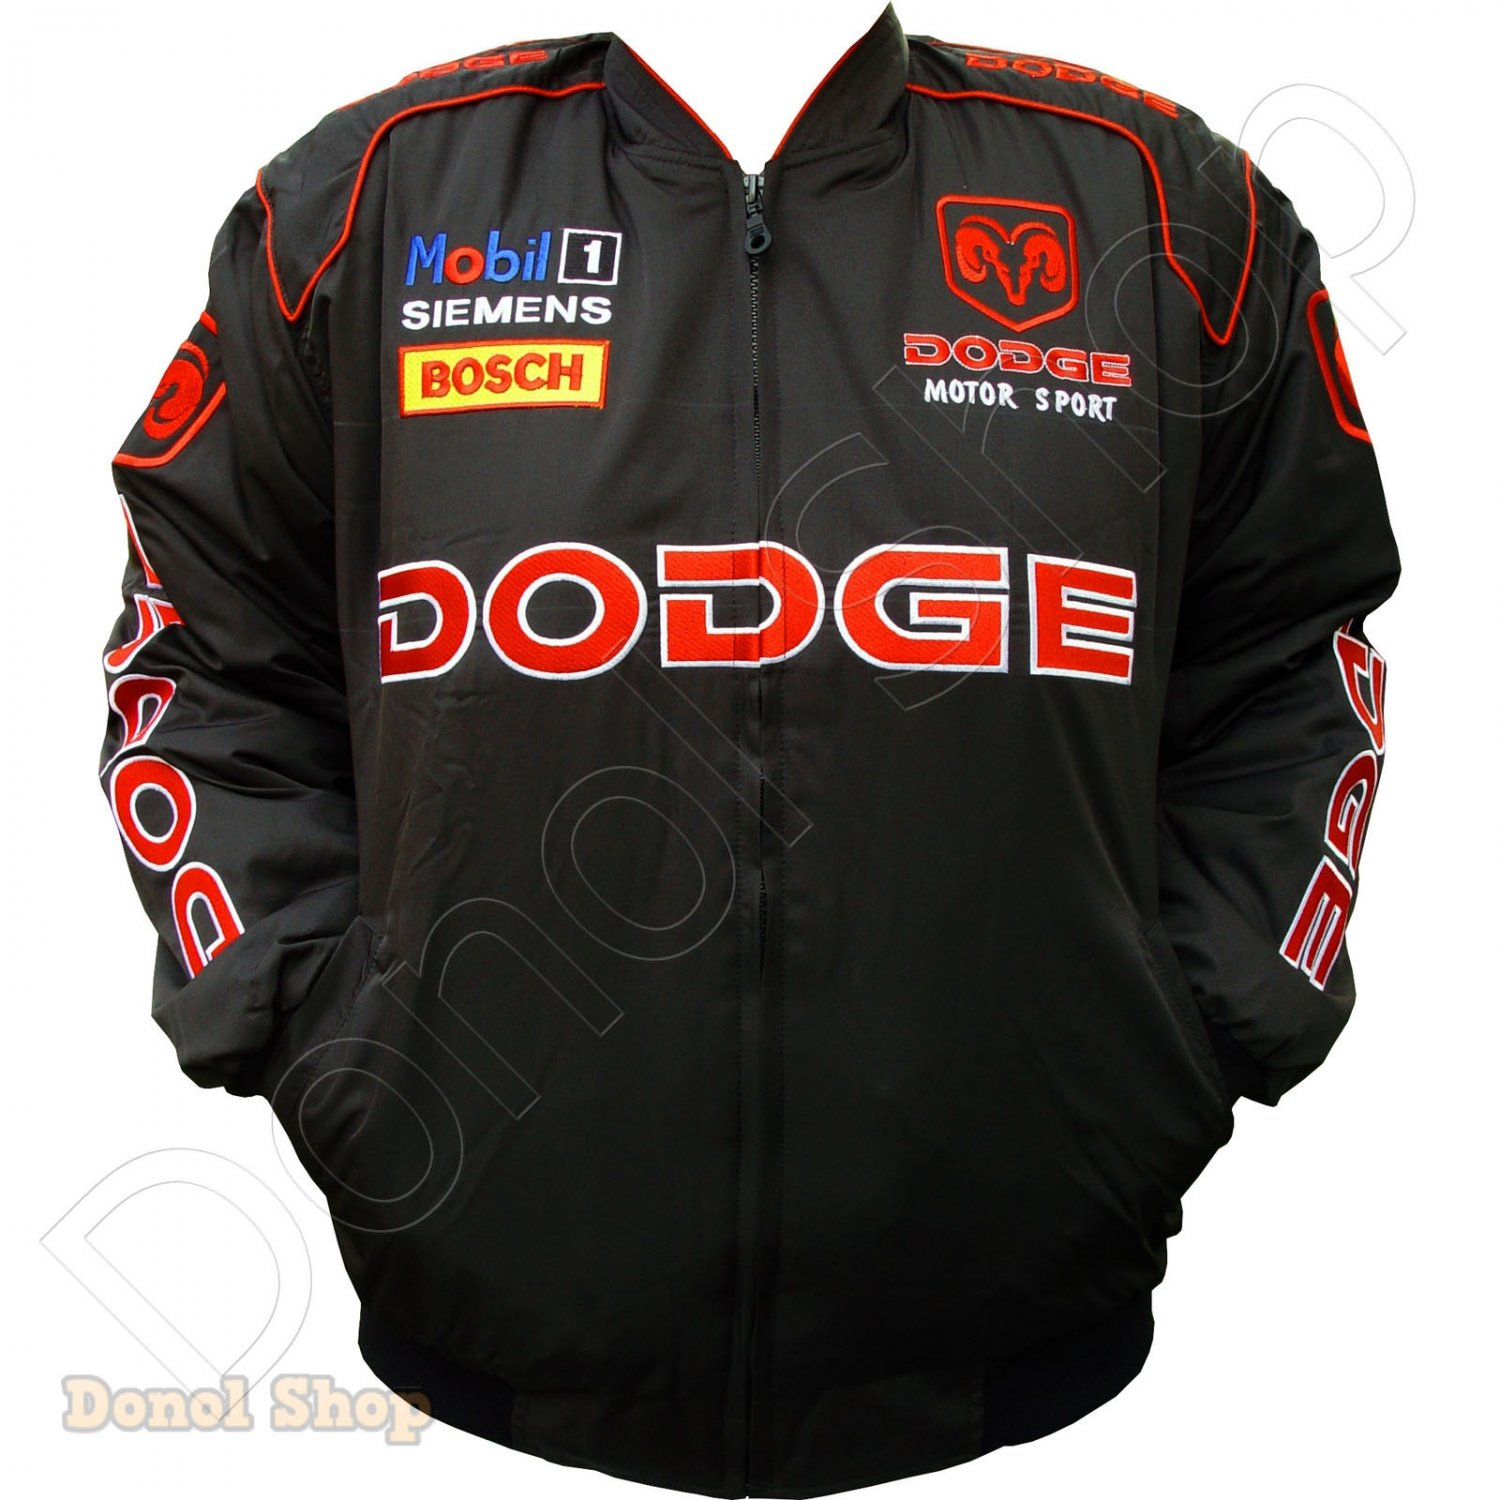 DODGE RAM MOTOR SPORT TEAM RACING JACKET size M